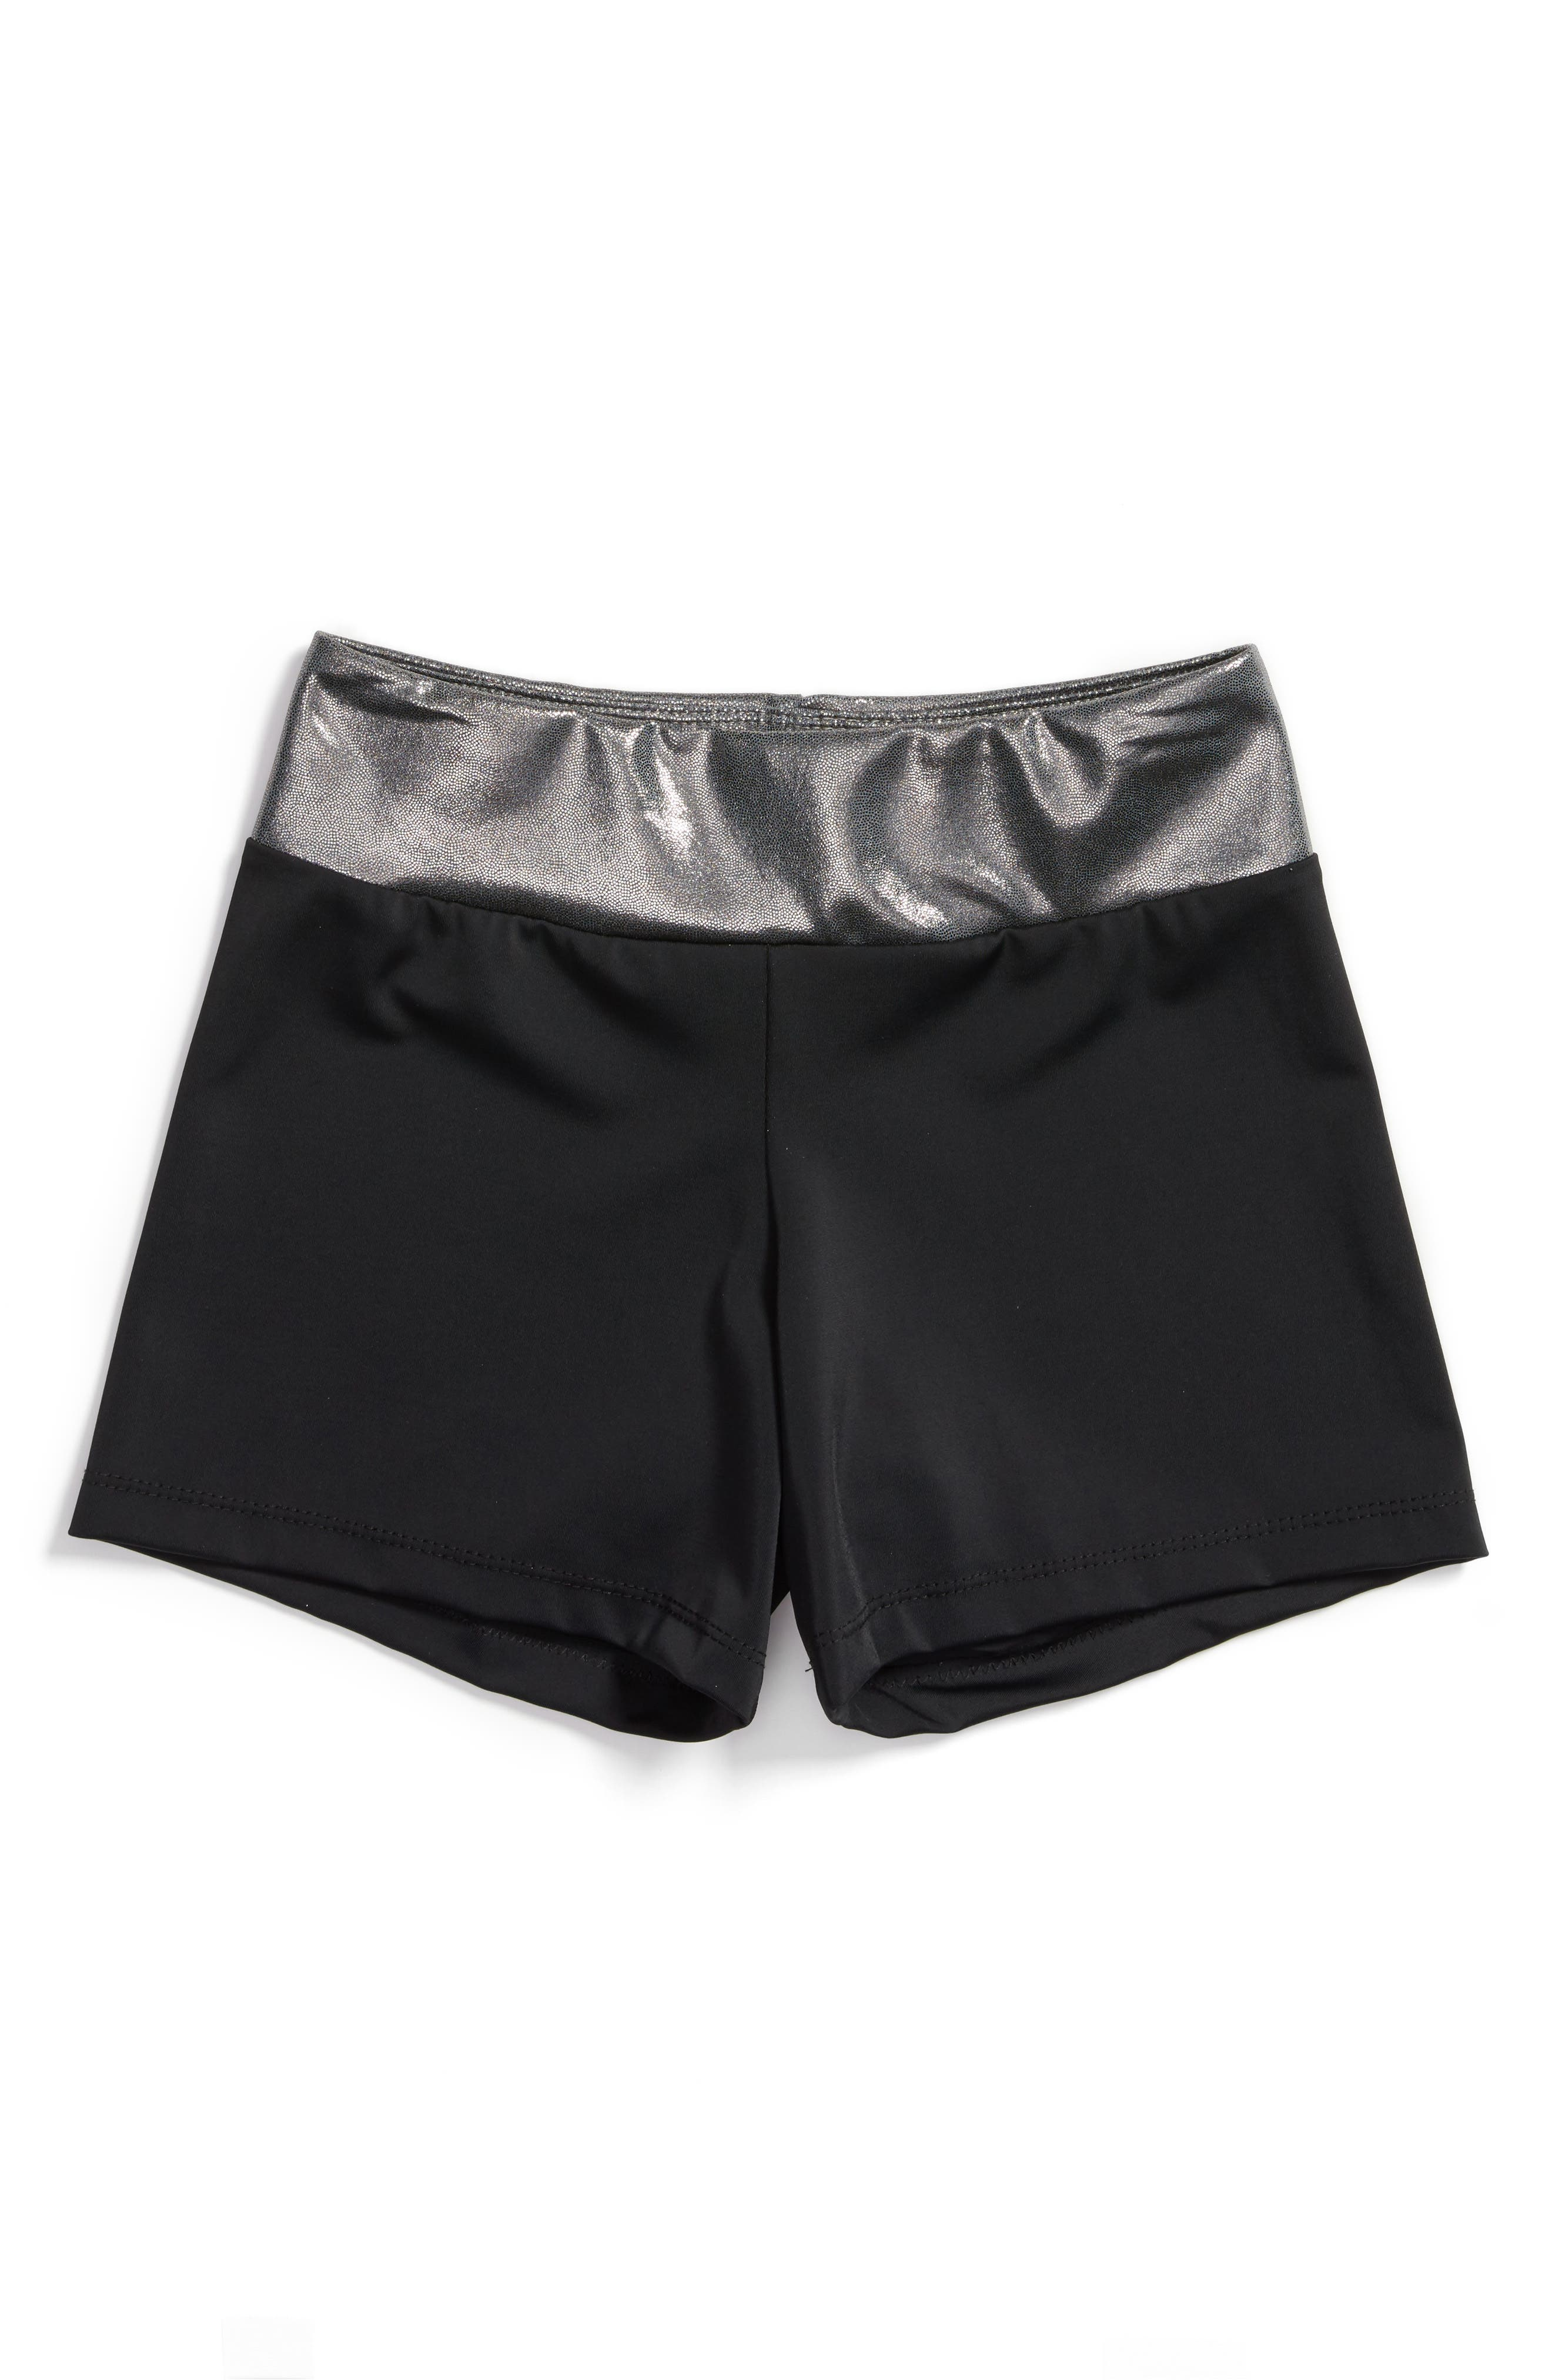 Girl Power Stretch Shorts,                         Main,                         color, Black/ Silver